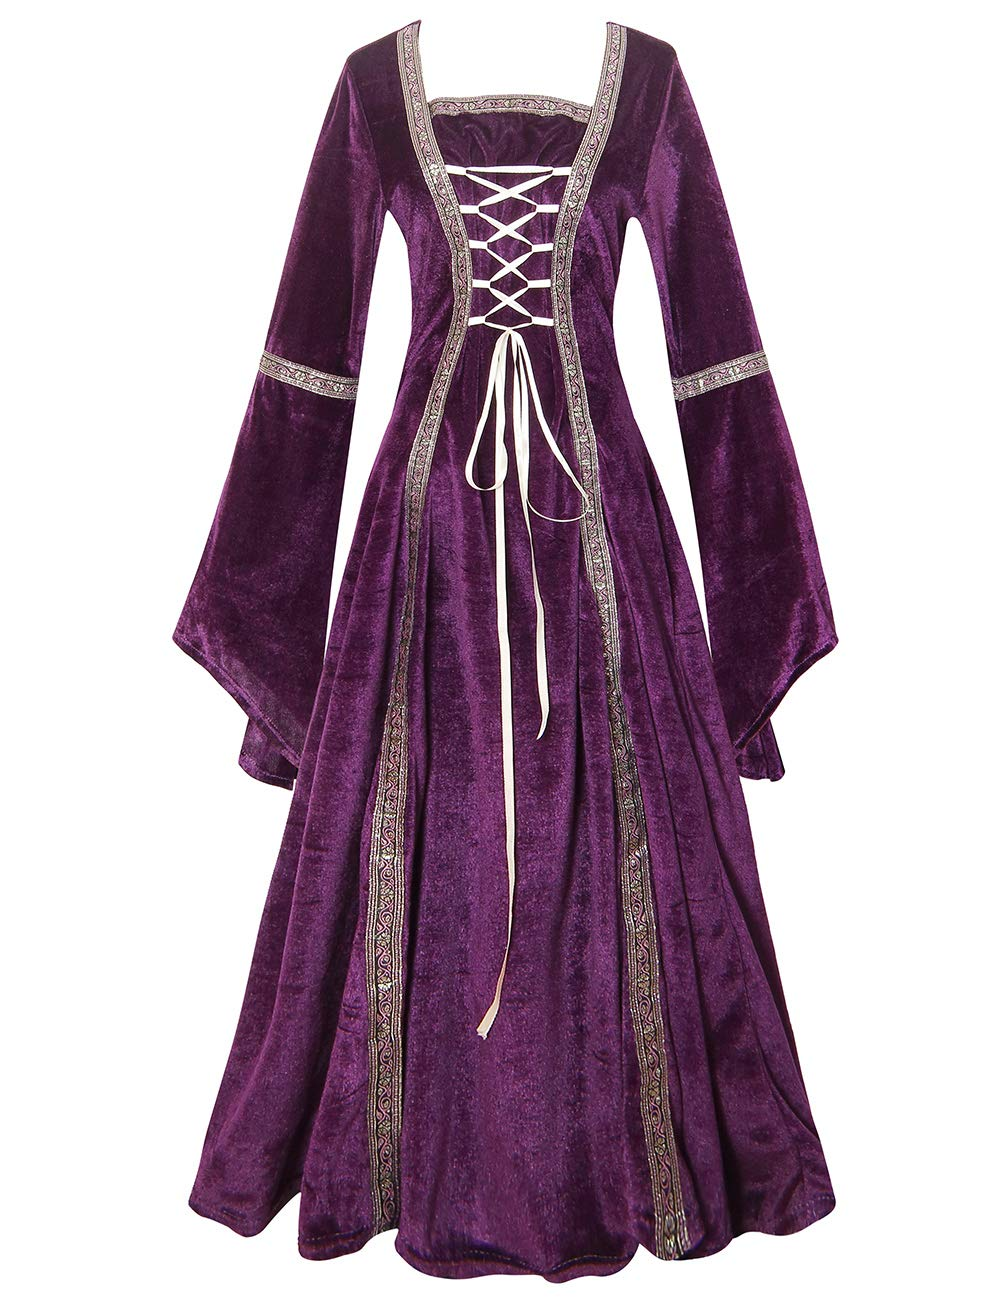 Colorful House Plus Size Medieval Dress, Renaissance Princess Costume for Women(Purple, X-Large)